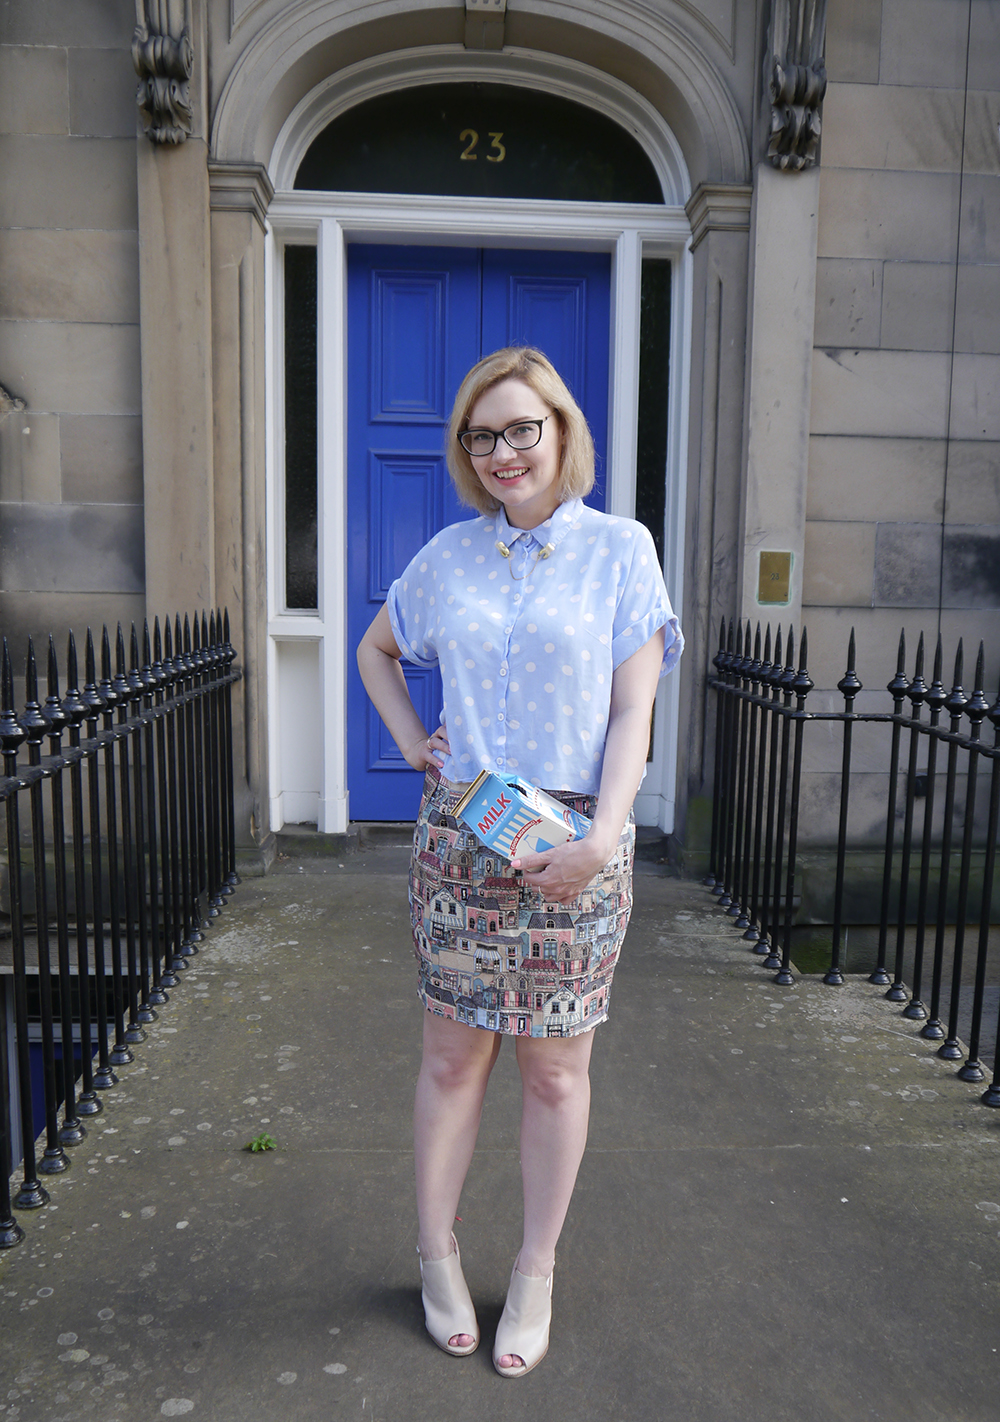 Scottish blogger, Edinburgh blogger, polkadot shirt, teeth collar clips, novelty milky bag, blue door edinburgh, Scottish street style, quirky street style, dressing to a theme, food inspired outfit, pale girl style,